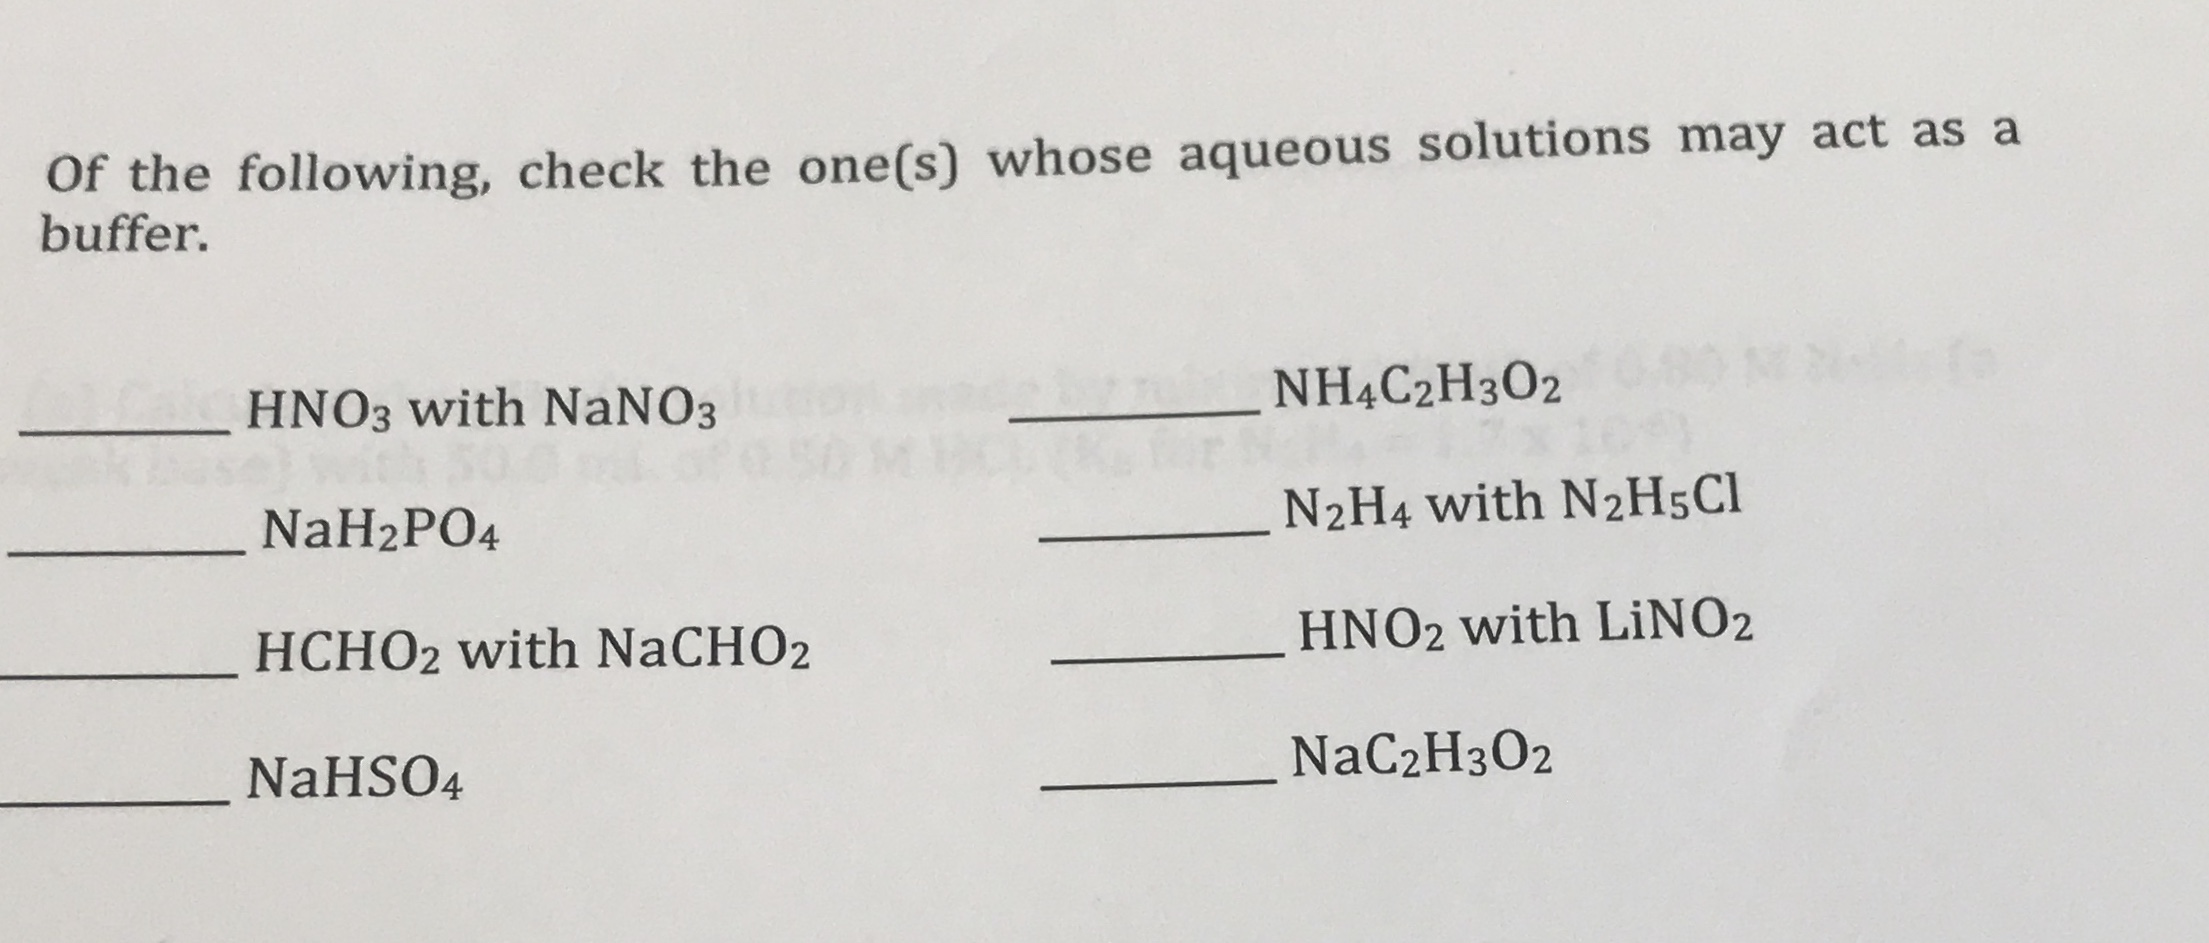 Of the following, check the one(s) whose aqueous solutions may act as a buffer. NHẠC2H3O2 HNO3 with NaNO3 N2H4 with N2H5C1 NaH2PO4 HNO2 with LİNO2 HCHO2 with NaCHO2 NaC2H3O2 NaHSO4